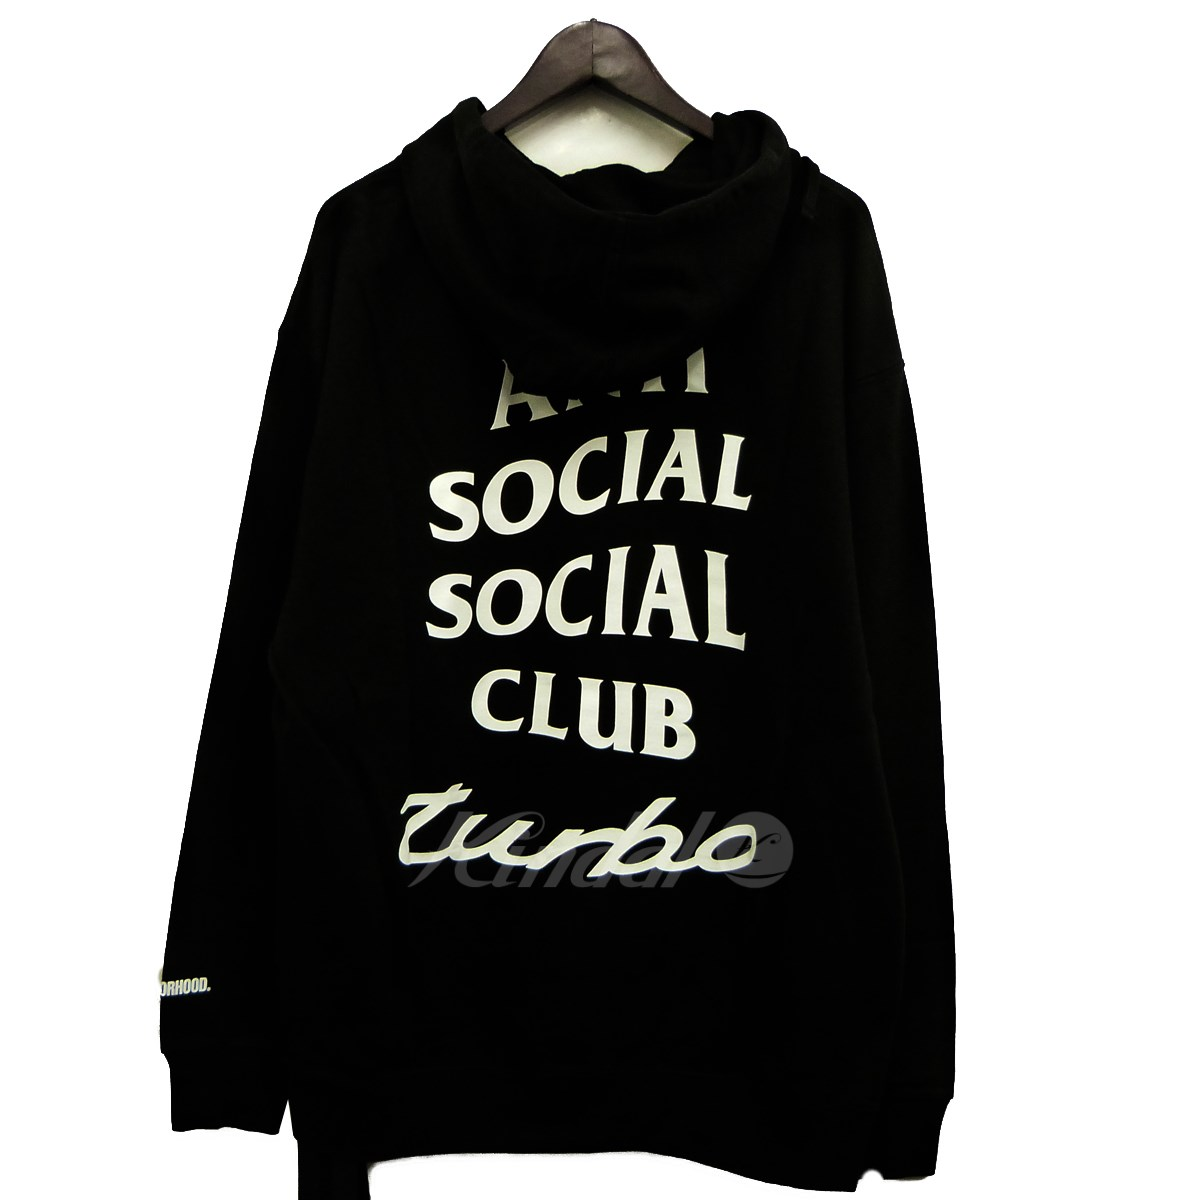 【中古】NEIGHBOR HOOD×ANTI SOCIAL SOCIAL CLUB 18SS「ASSC TURBO/CE-HOODED LS」両面プリントプルオーバーパーカー 【送料無料】 【143668】 【KIND1551】